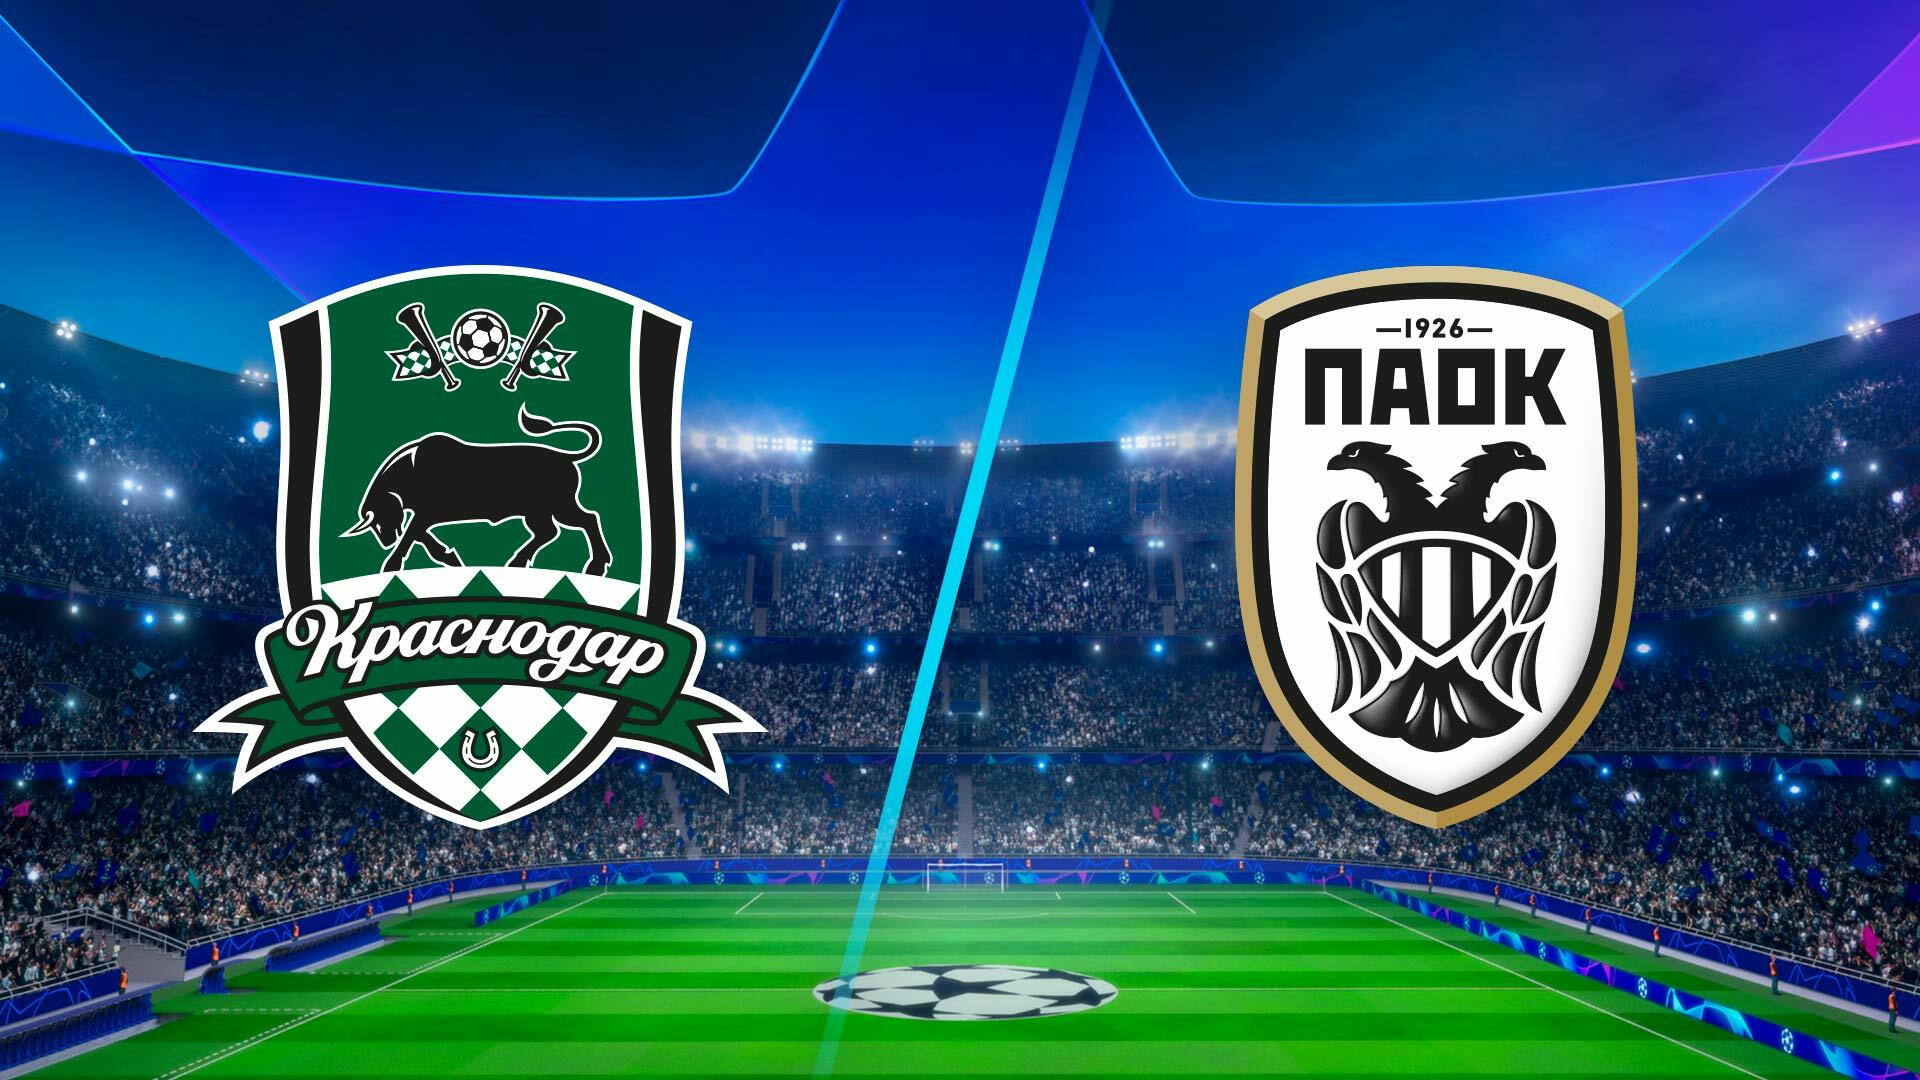 Watch Uefa Champions League Highlights Krasnodar Vs Paok Full Show On Cbs All Access